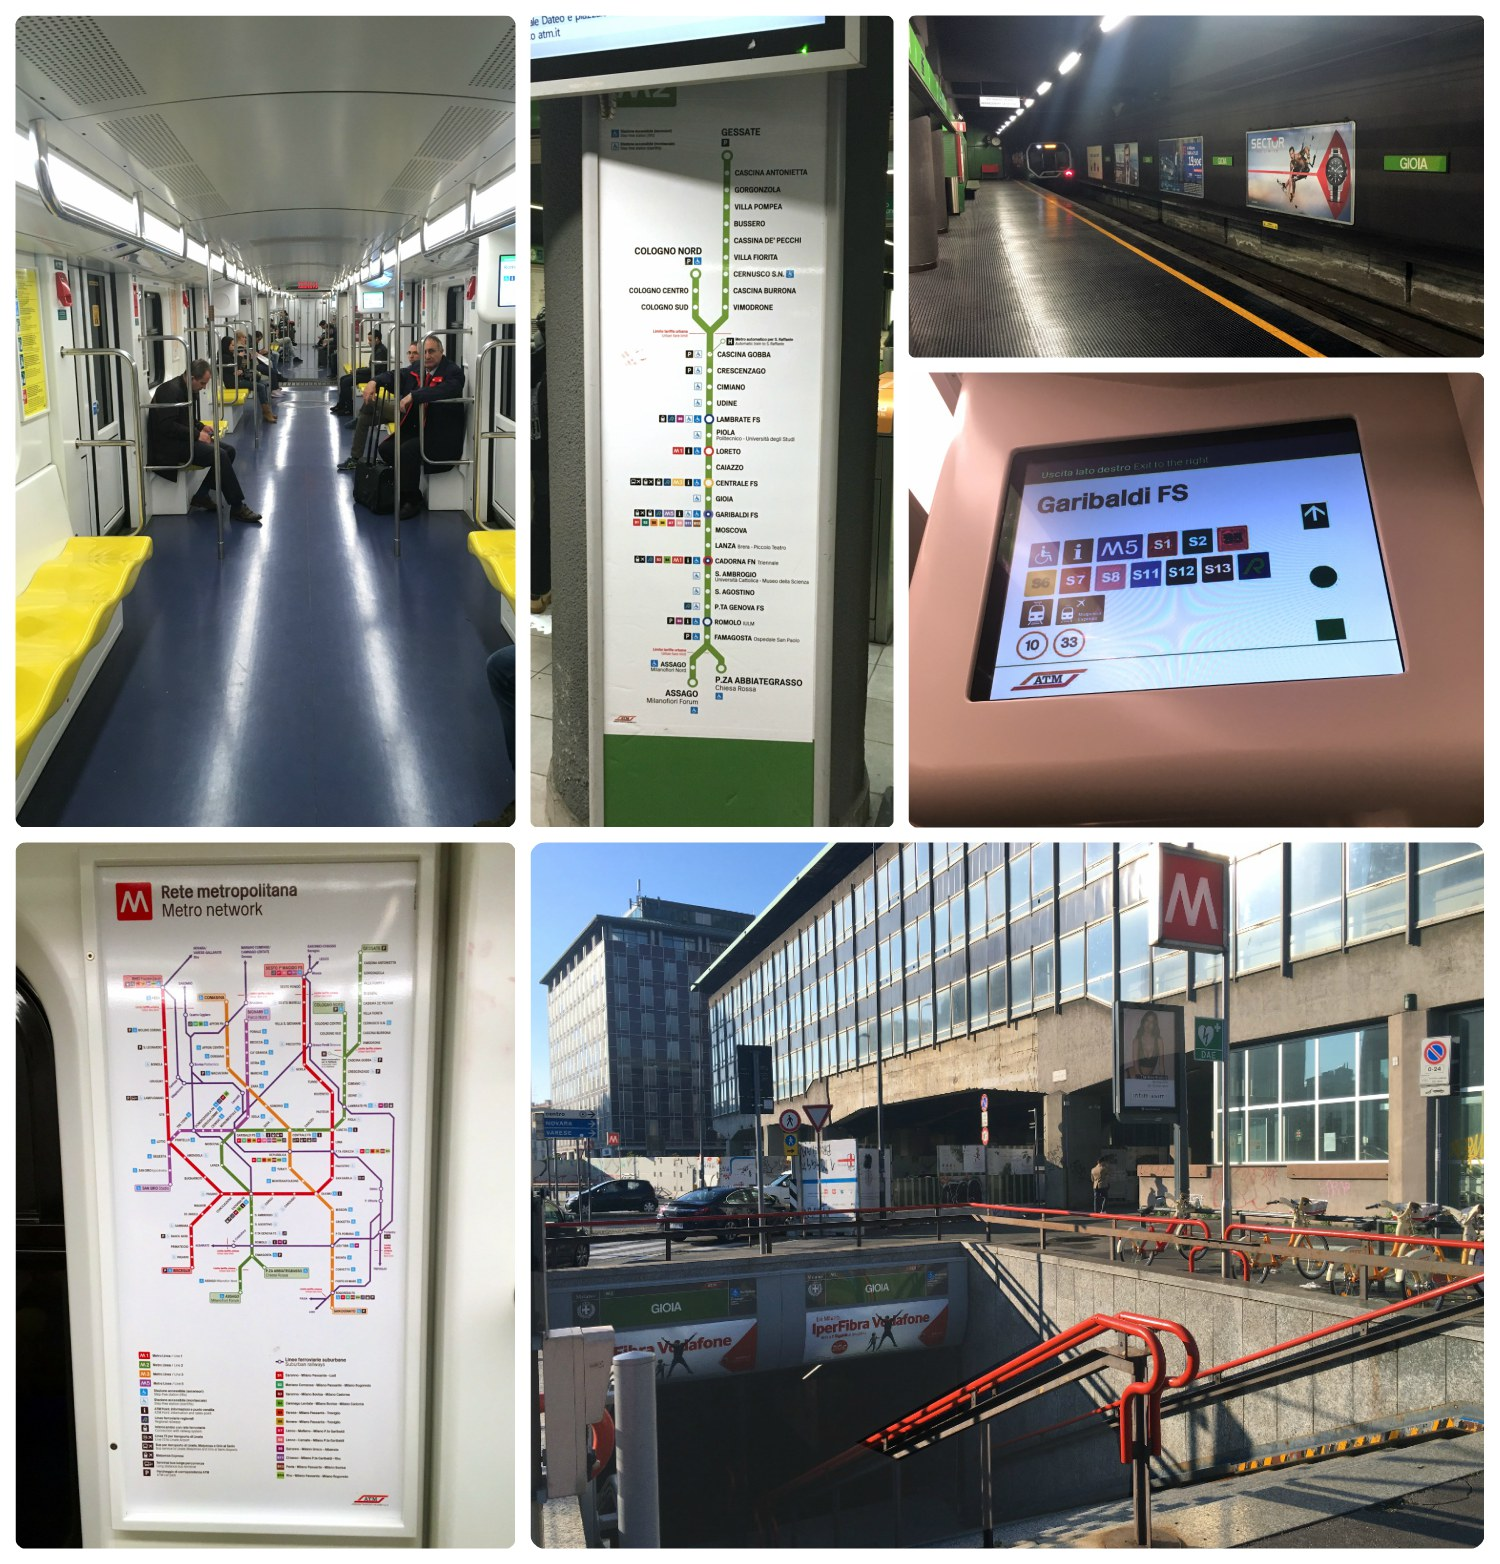 Clockwise (from the top): On-board a metro train, a metro sign with the M2 (green) line stops, inside a metro station, a digital screen on the metro train with stop information, the outside of a metro station, a network map on-board the metro train.